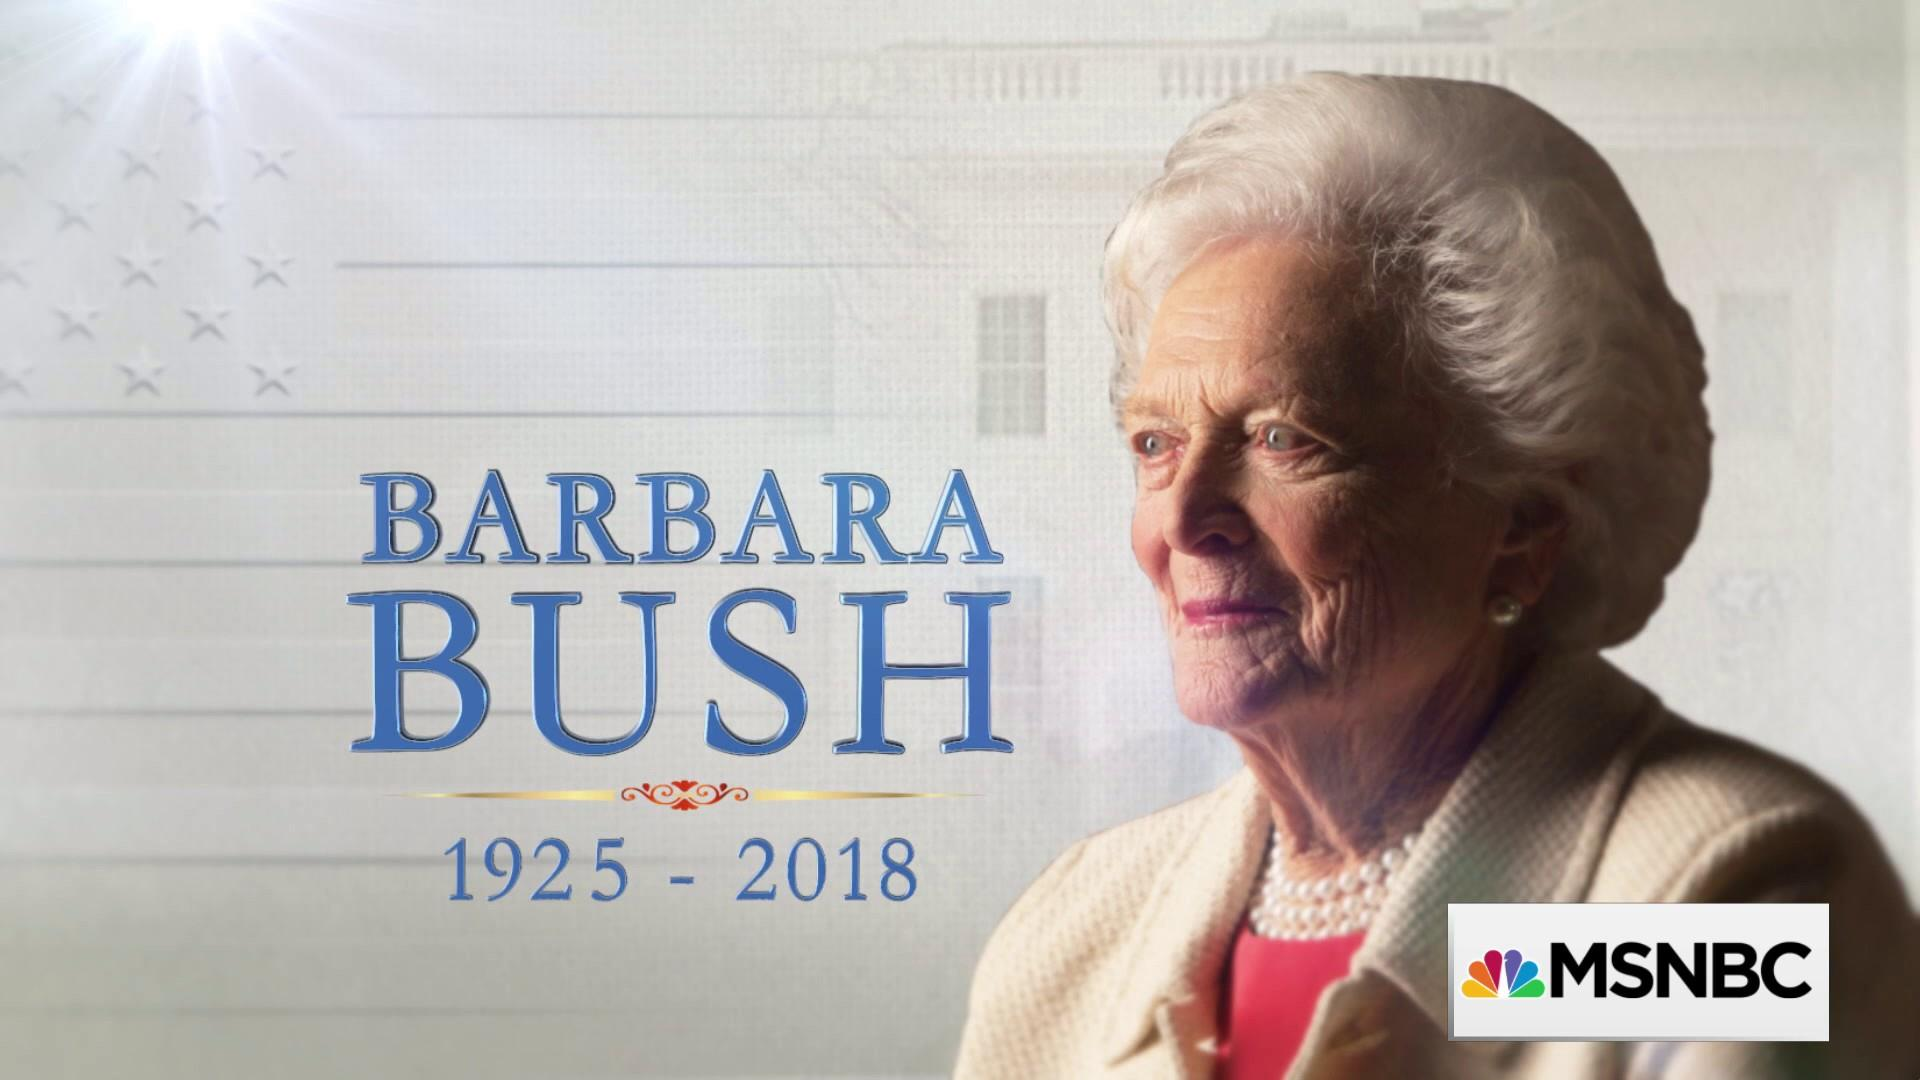 Barbara Bush: Reflecting on the Fmr. First Lady's life and legacy